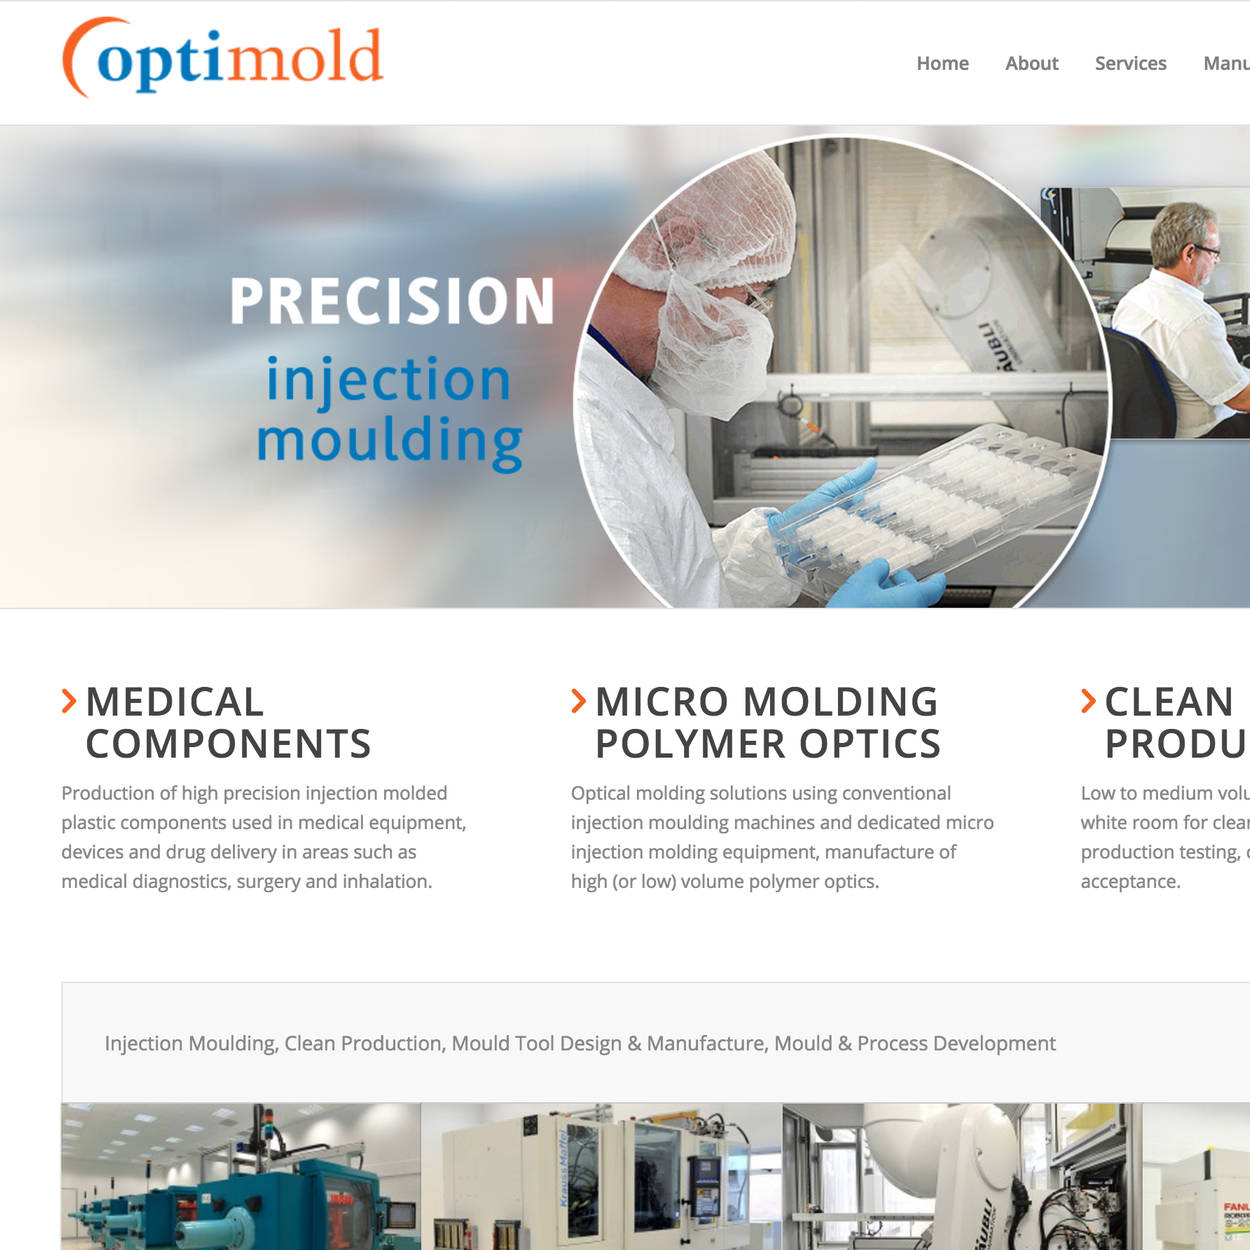 orangebox-web-design-optimold